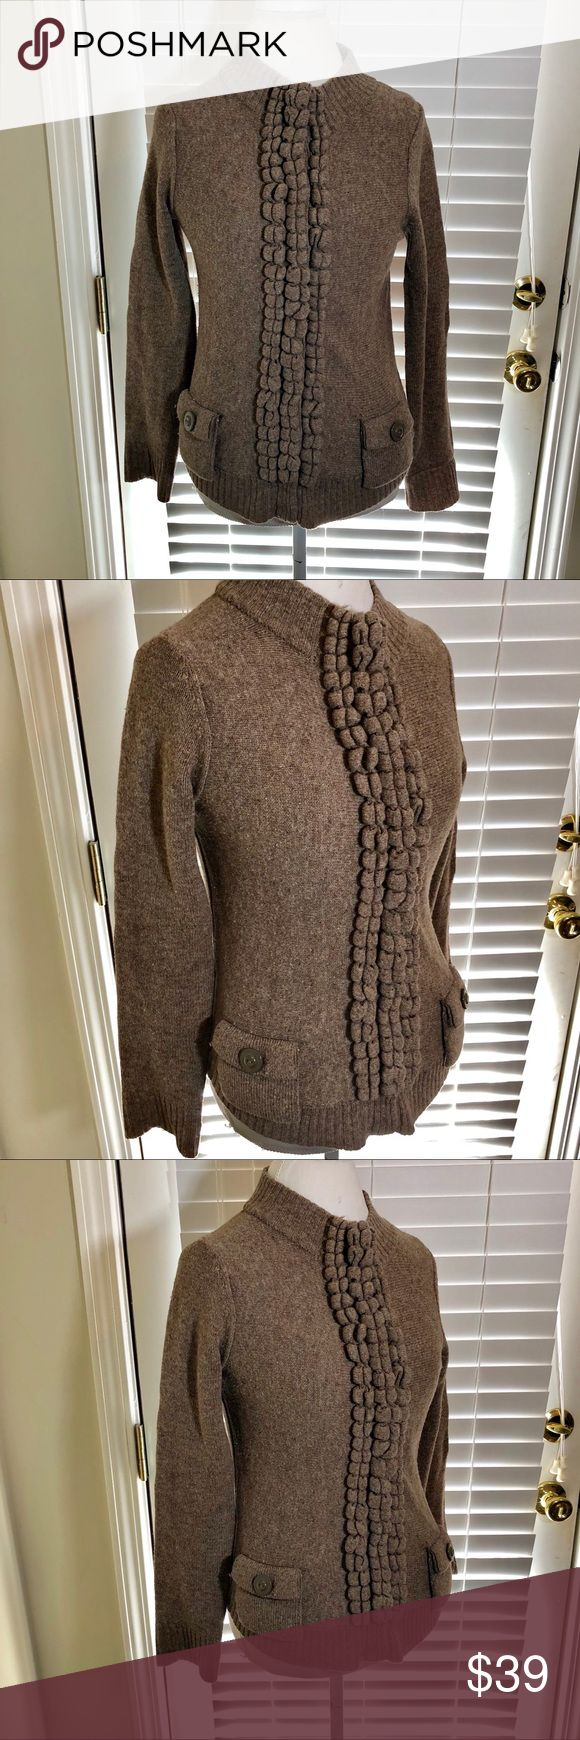 Anthropologie Moth Snap Front Sweater Oatmeal brown Moth brand sweater from Anthropologie. Size medium and in very good condition with no flaws. Full snap button front. ⚓️ No holds or trades. I do accept reasonable offers and negotiate only through the offer button. Thank you for looking! 🚭🐩T3 Anthropologie Sweaters Cardigans